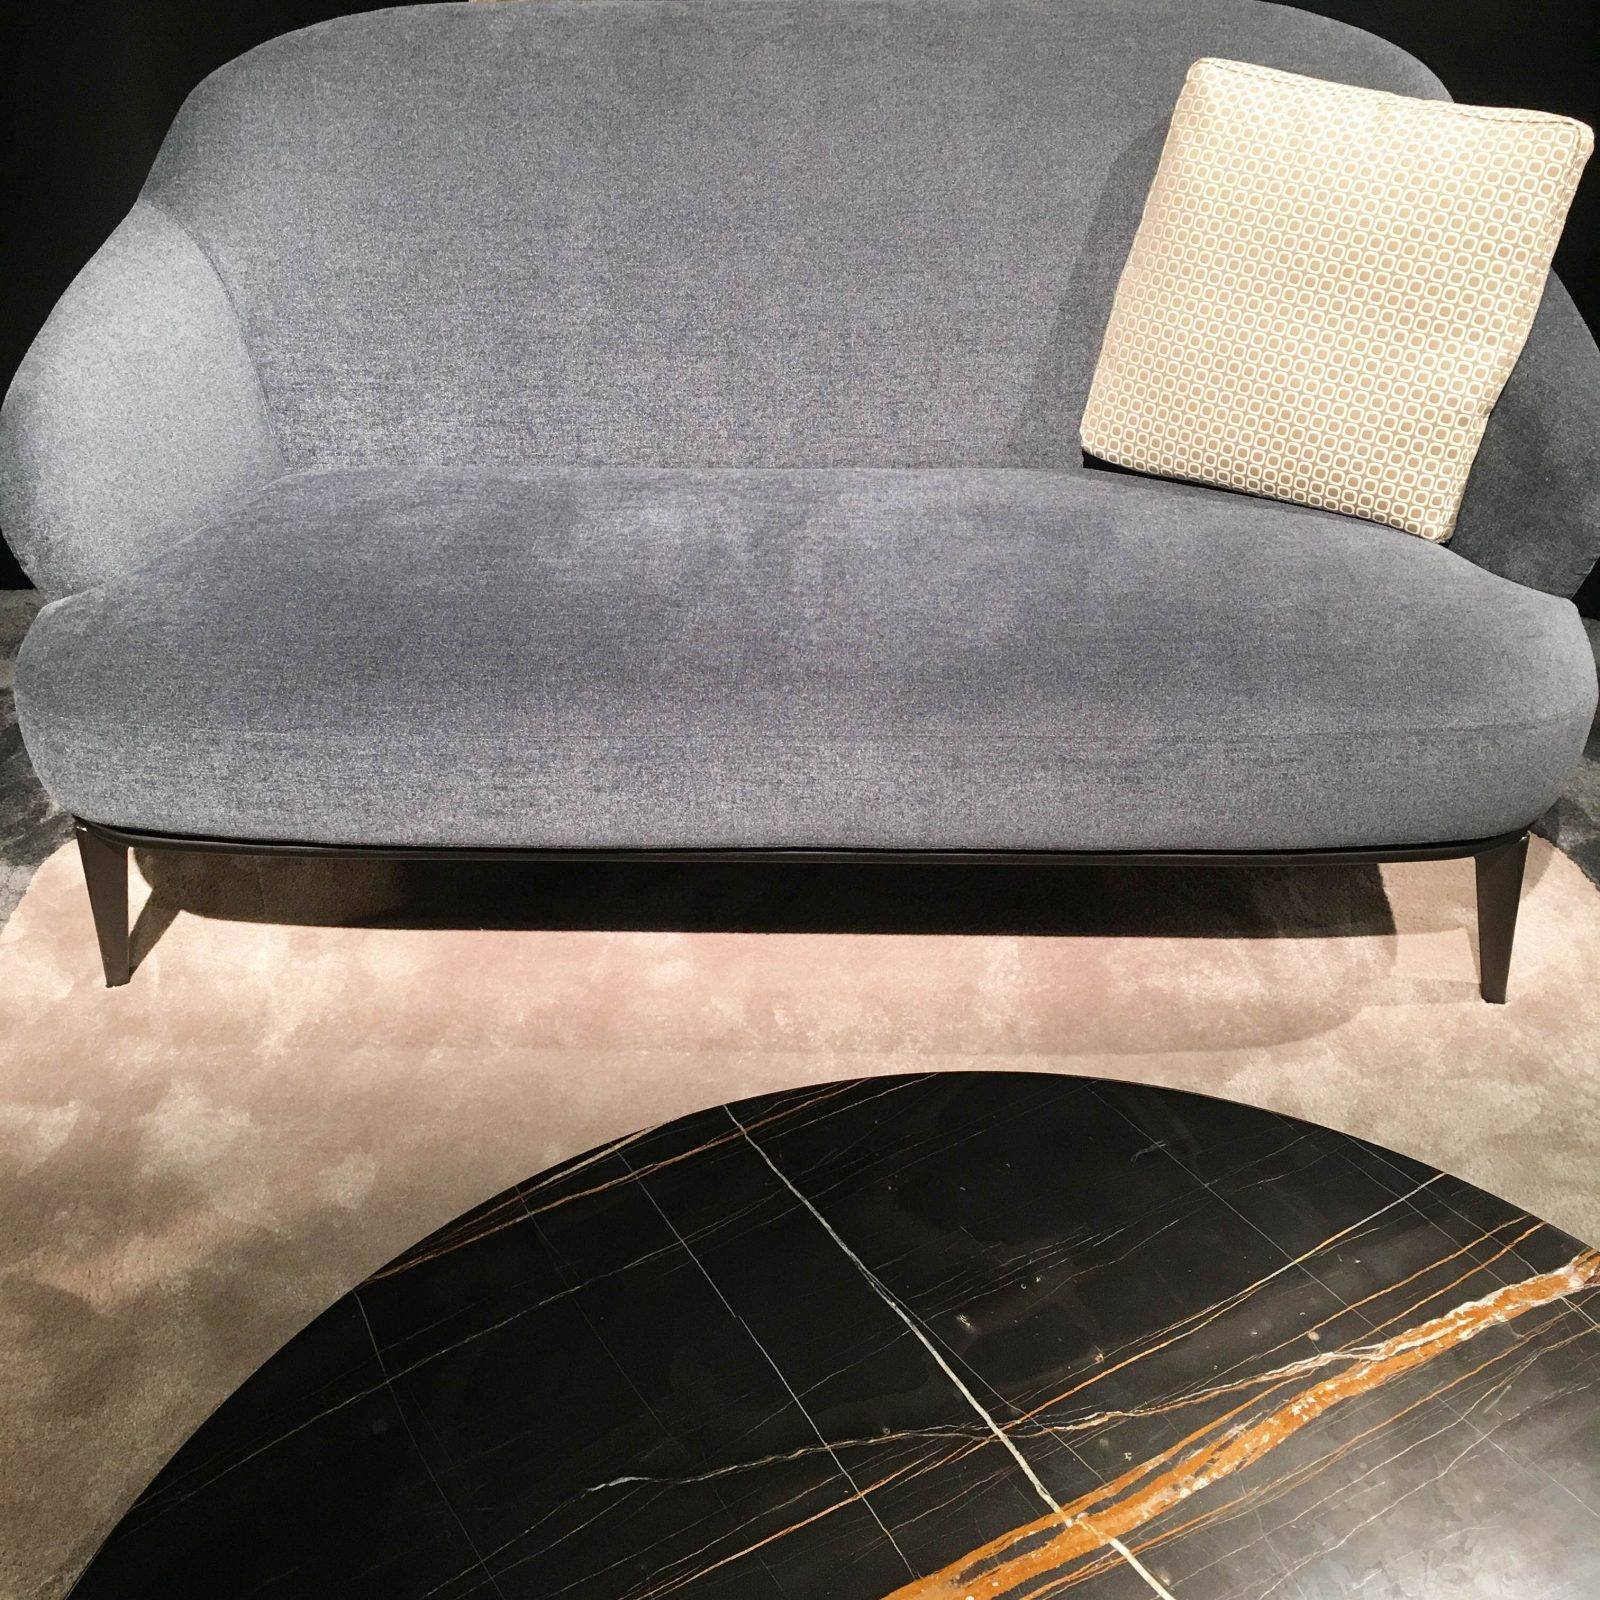 IMM 2016 Trendreport: Minotti